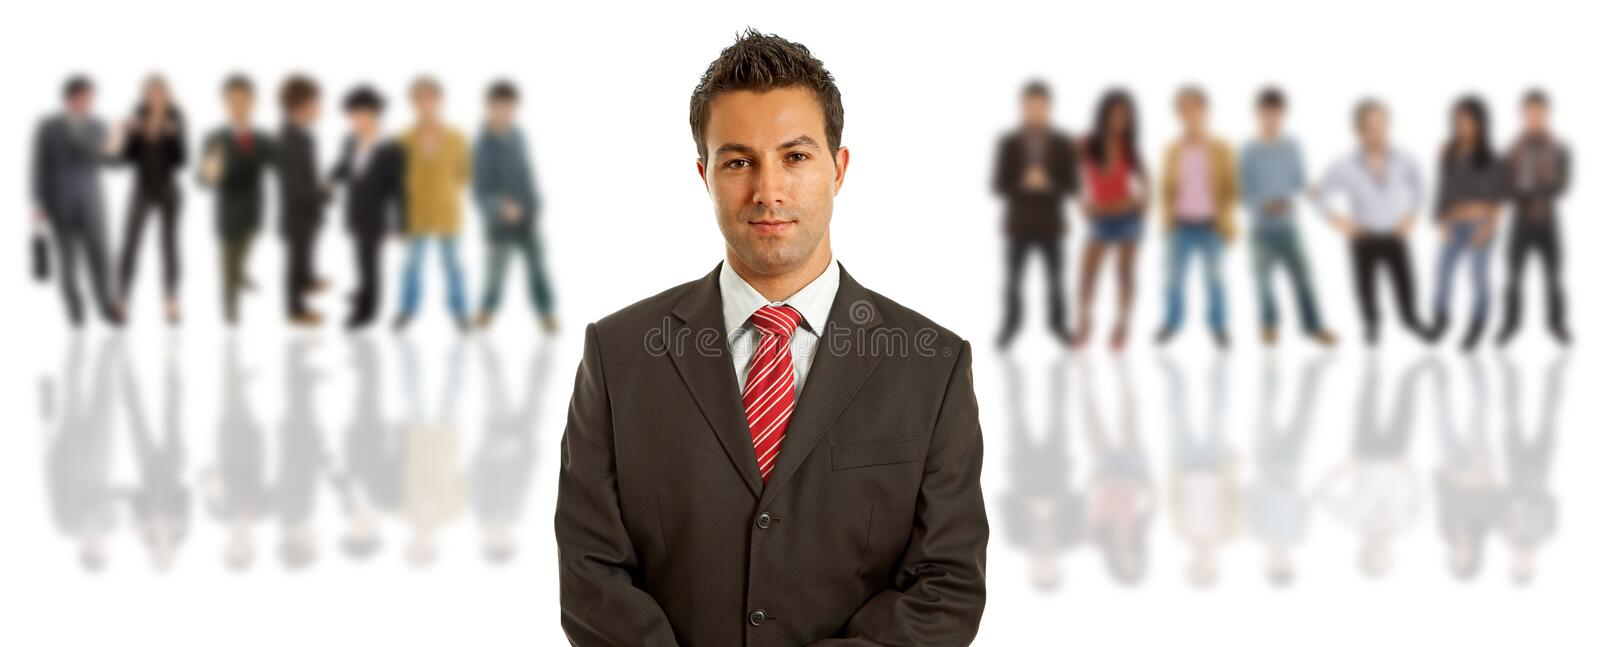 Download Business Man Stock Images - Image: 13471914